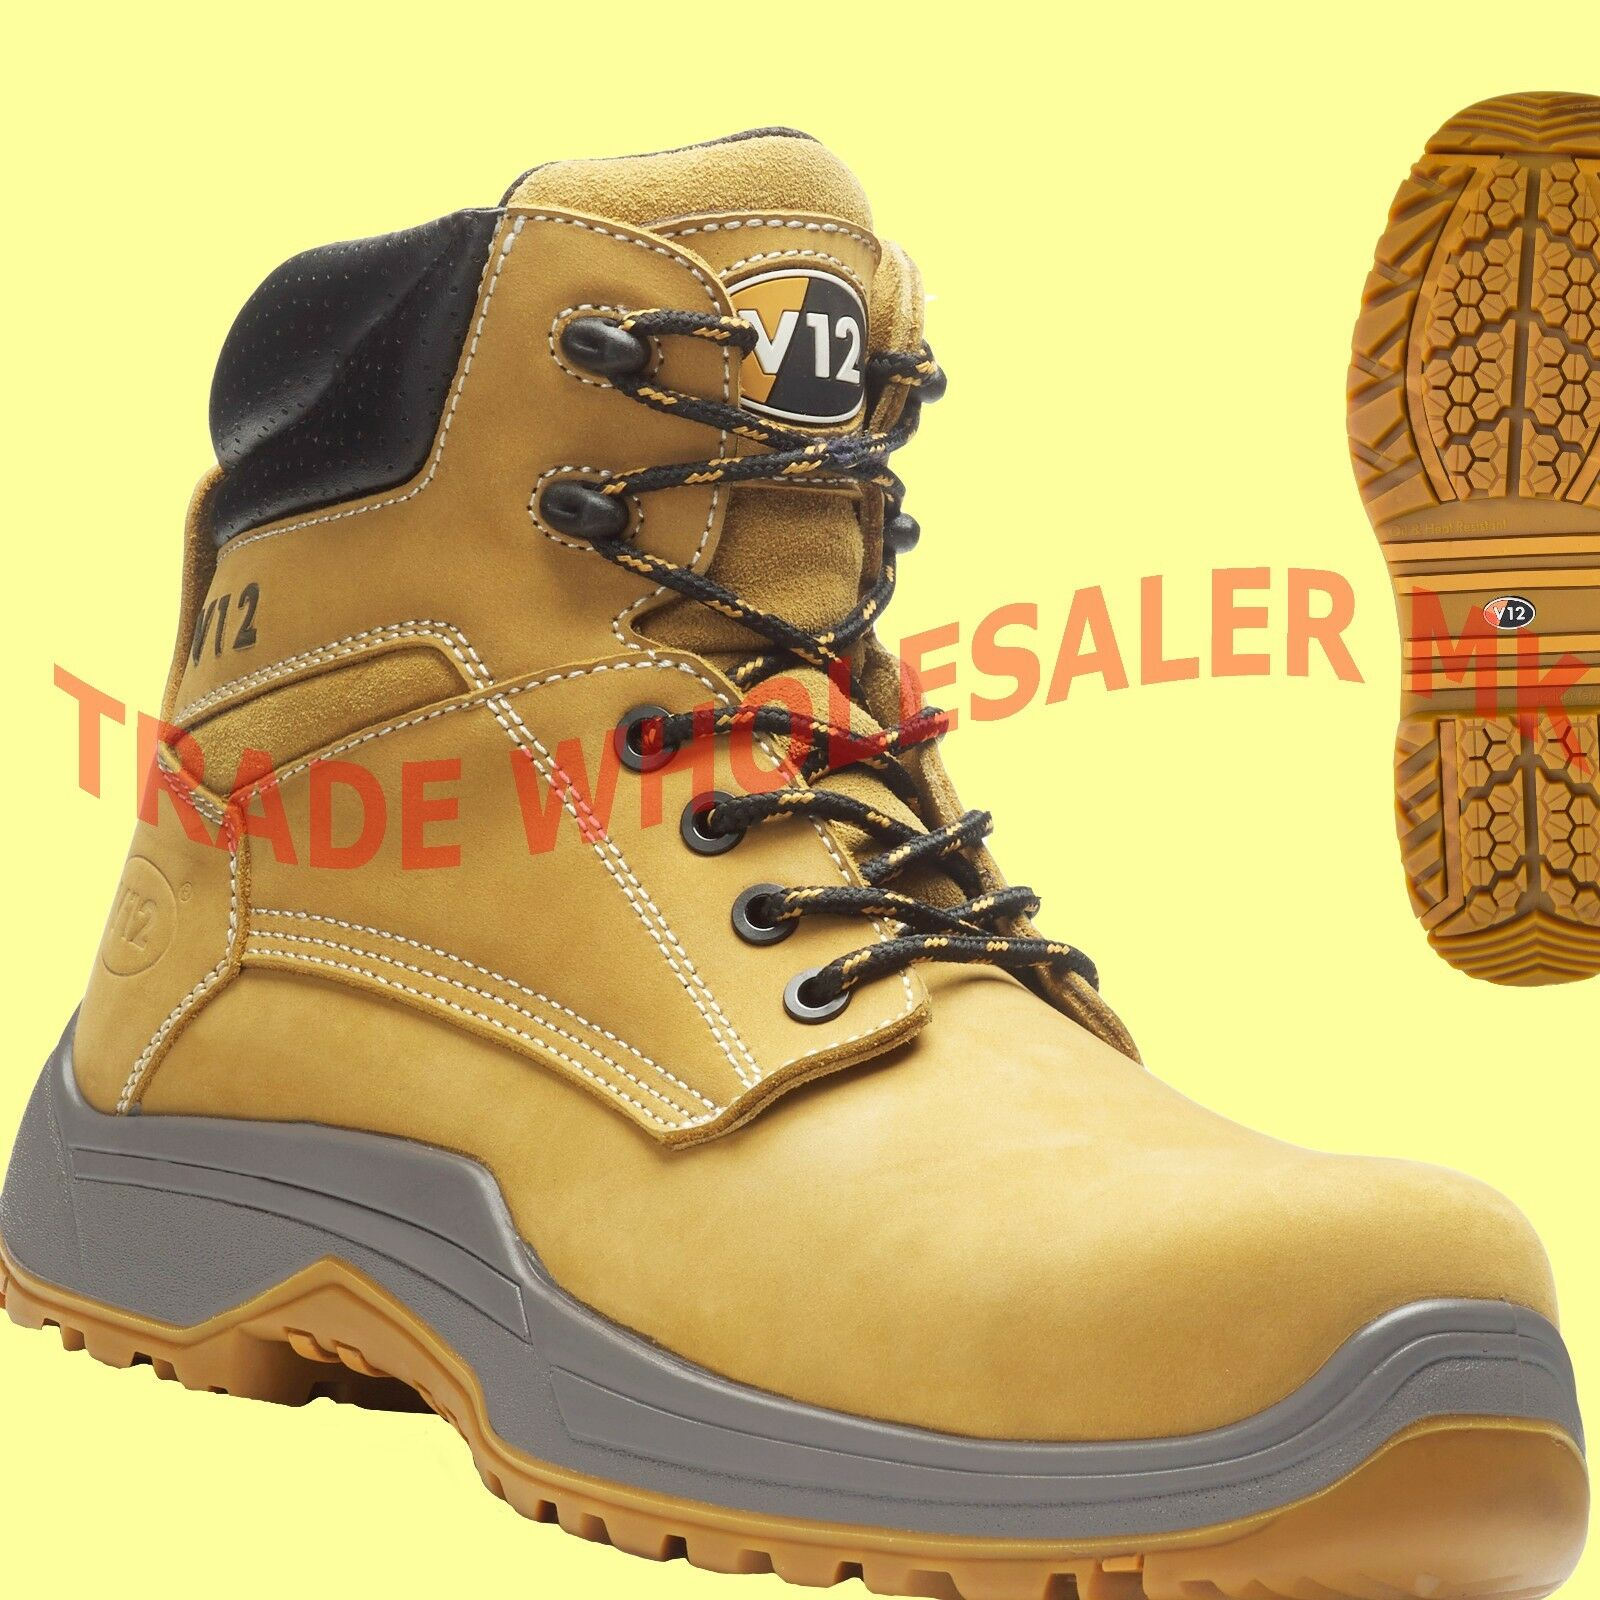 V12 PUMA LEATHER WORK COMPOSITE TOE CAP SAFETY BOOTS STEEL MIDSOLE